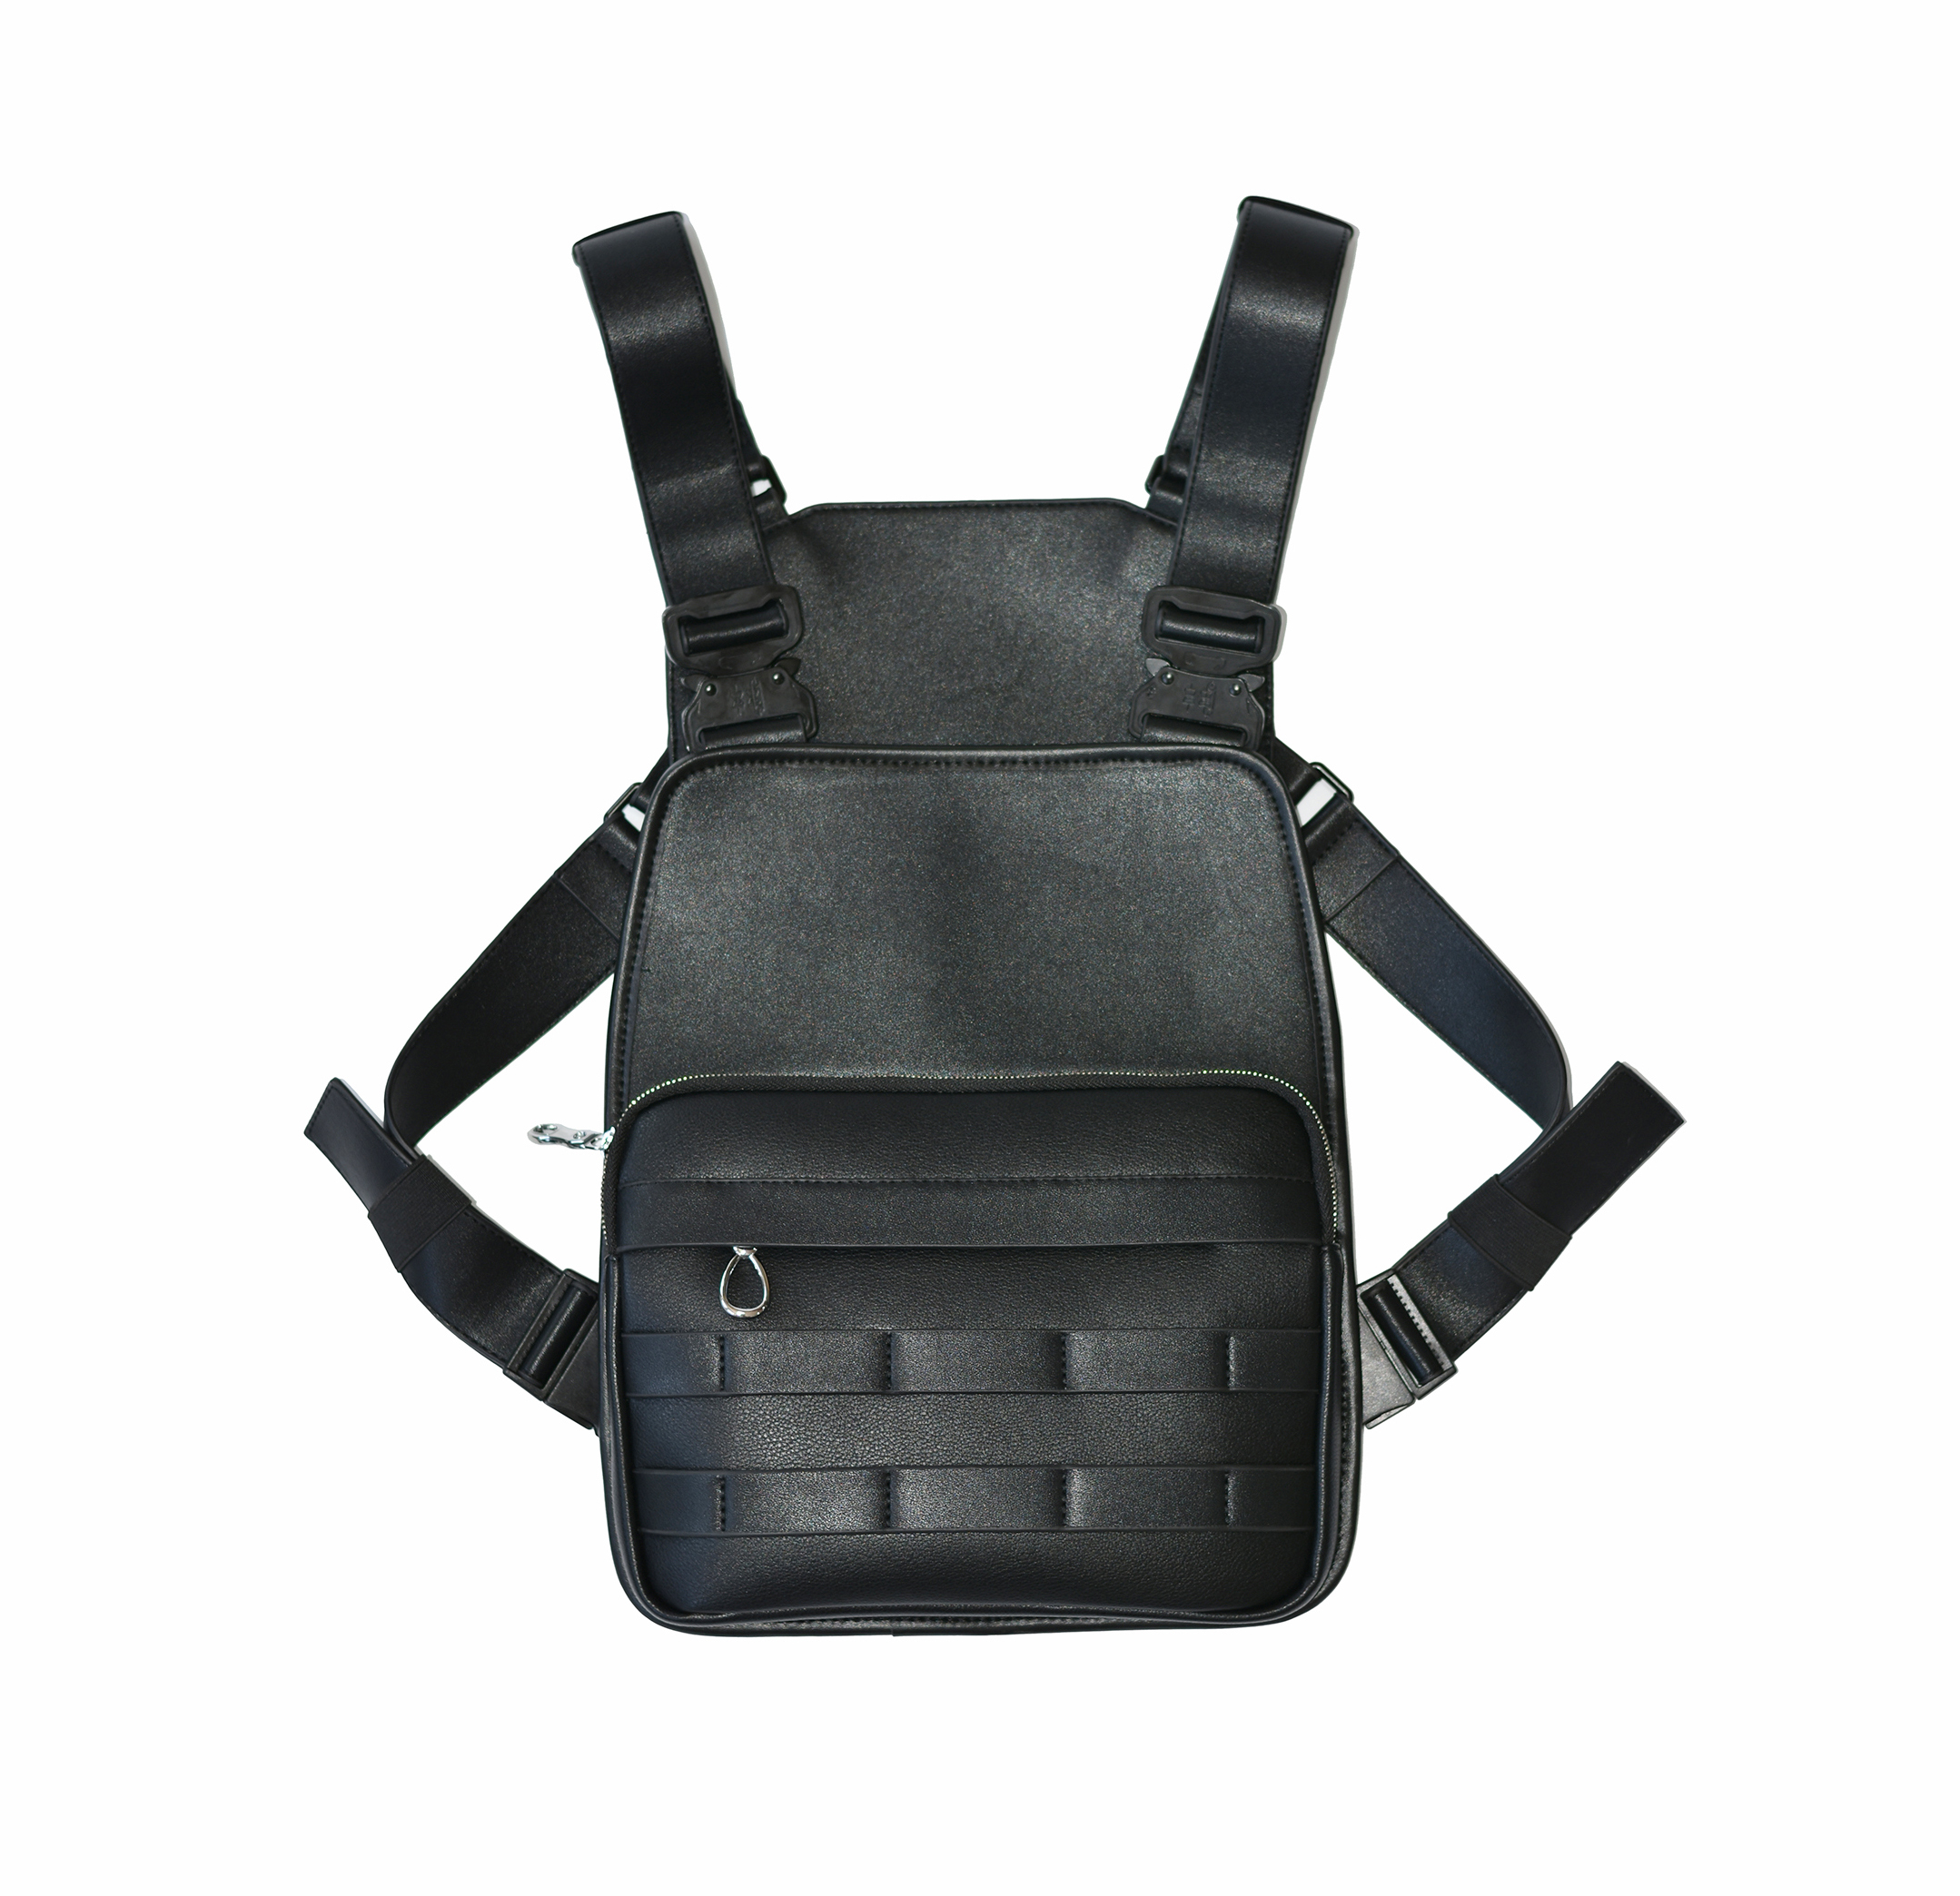 2019 New launched black leather  chest rig bag